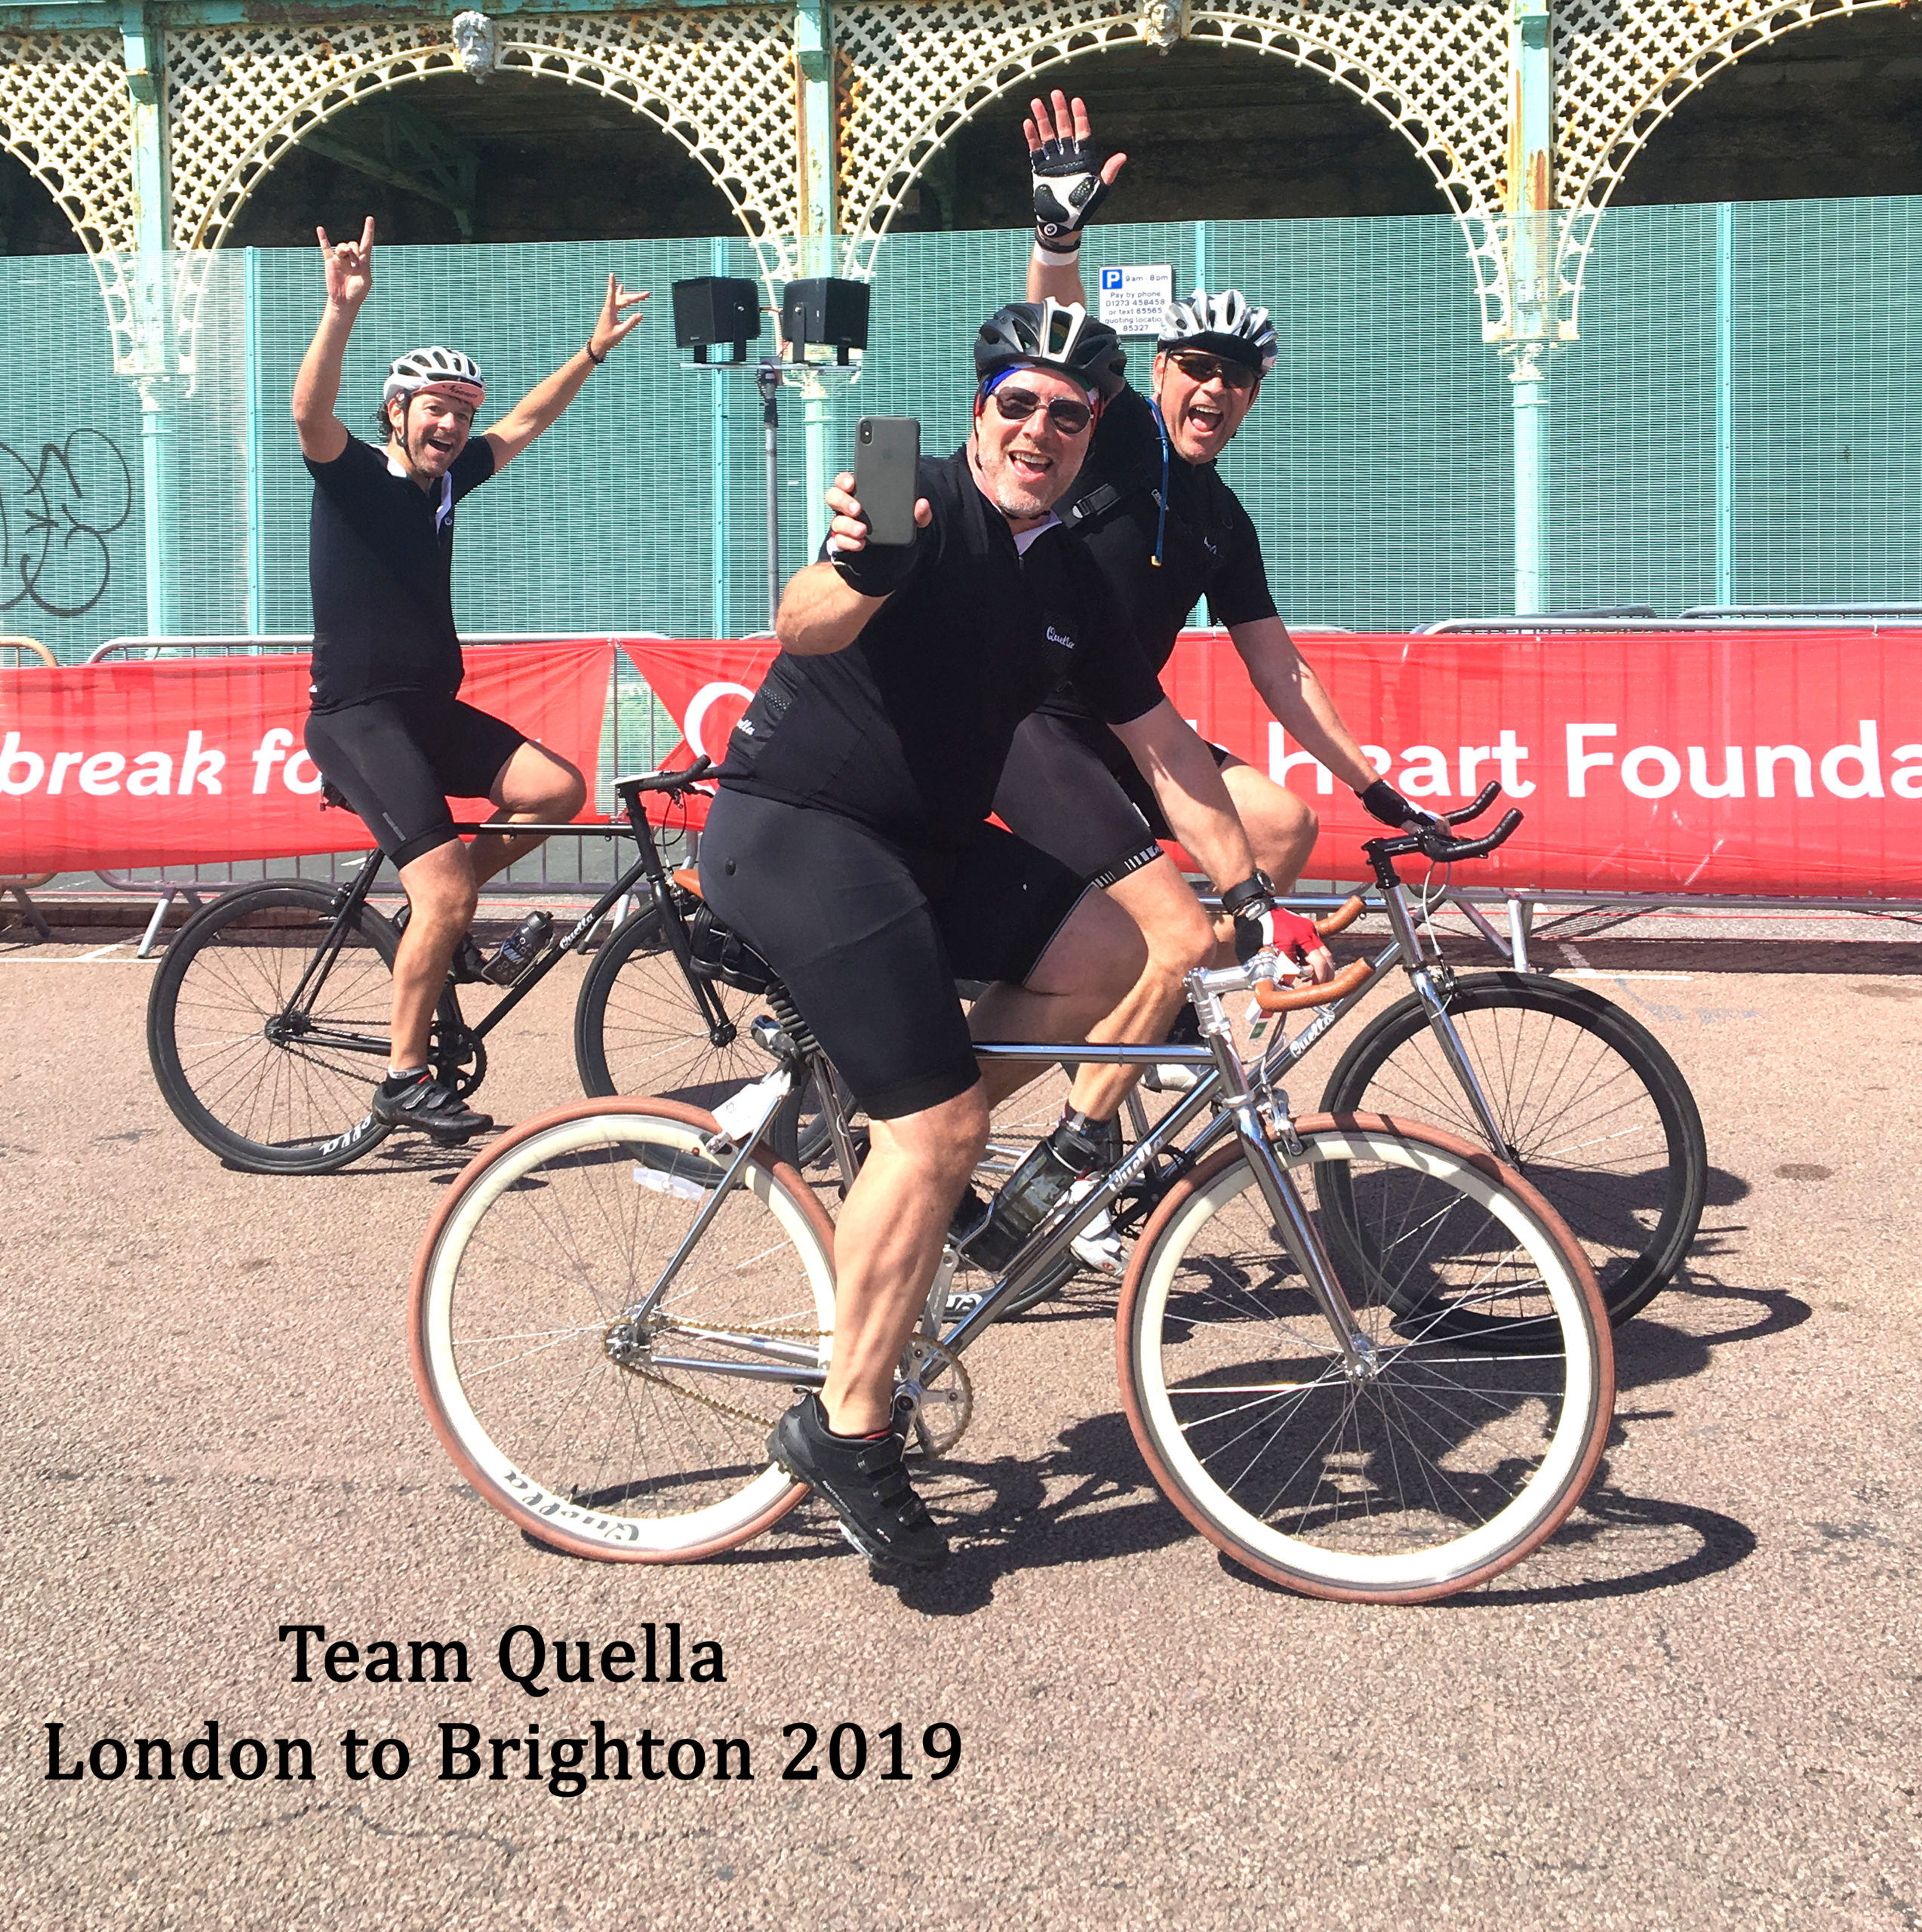 Quella Single speed - London to Brighton 2019